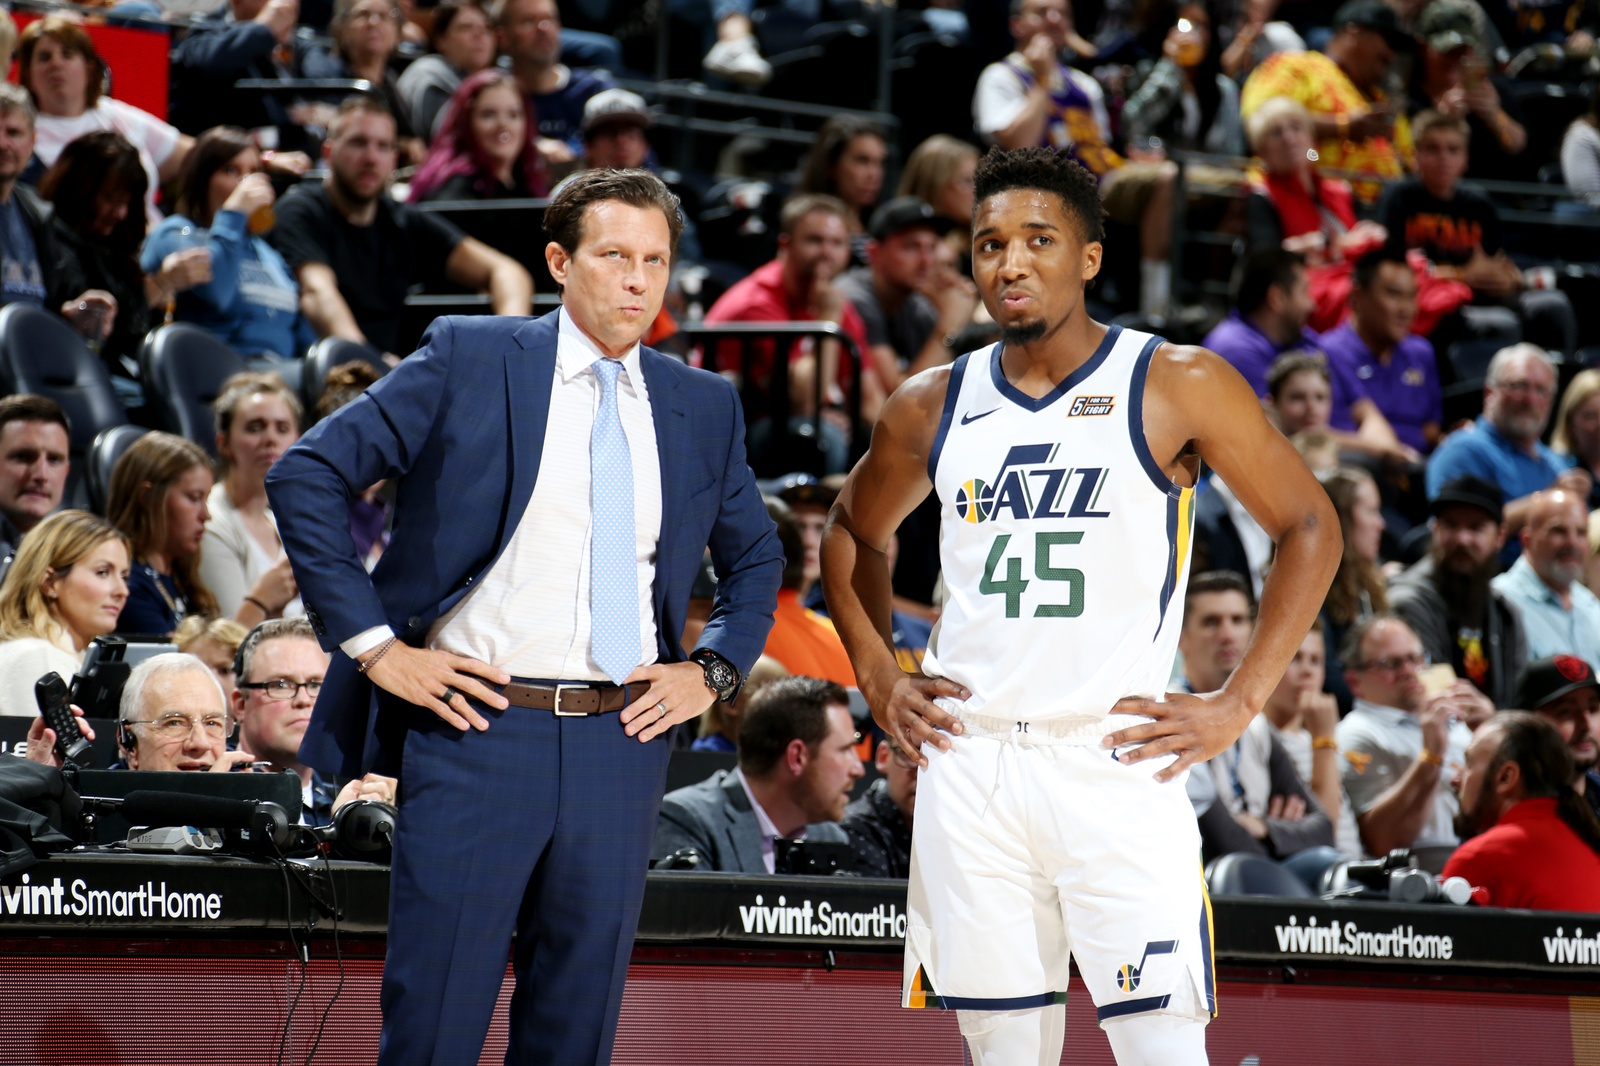 Head Coach Quin Snyder and Donovan Mitchell #45 of the Utah Jazz look on during a pre-season game against Adelaide 36ers on October 5, 2018 at vivint.SmartHome Arena in Salt Lake City, Utah.